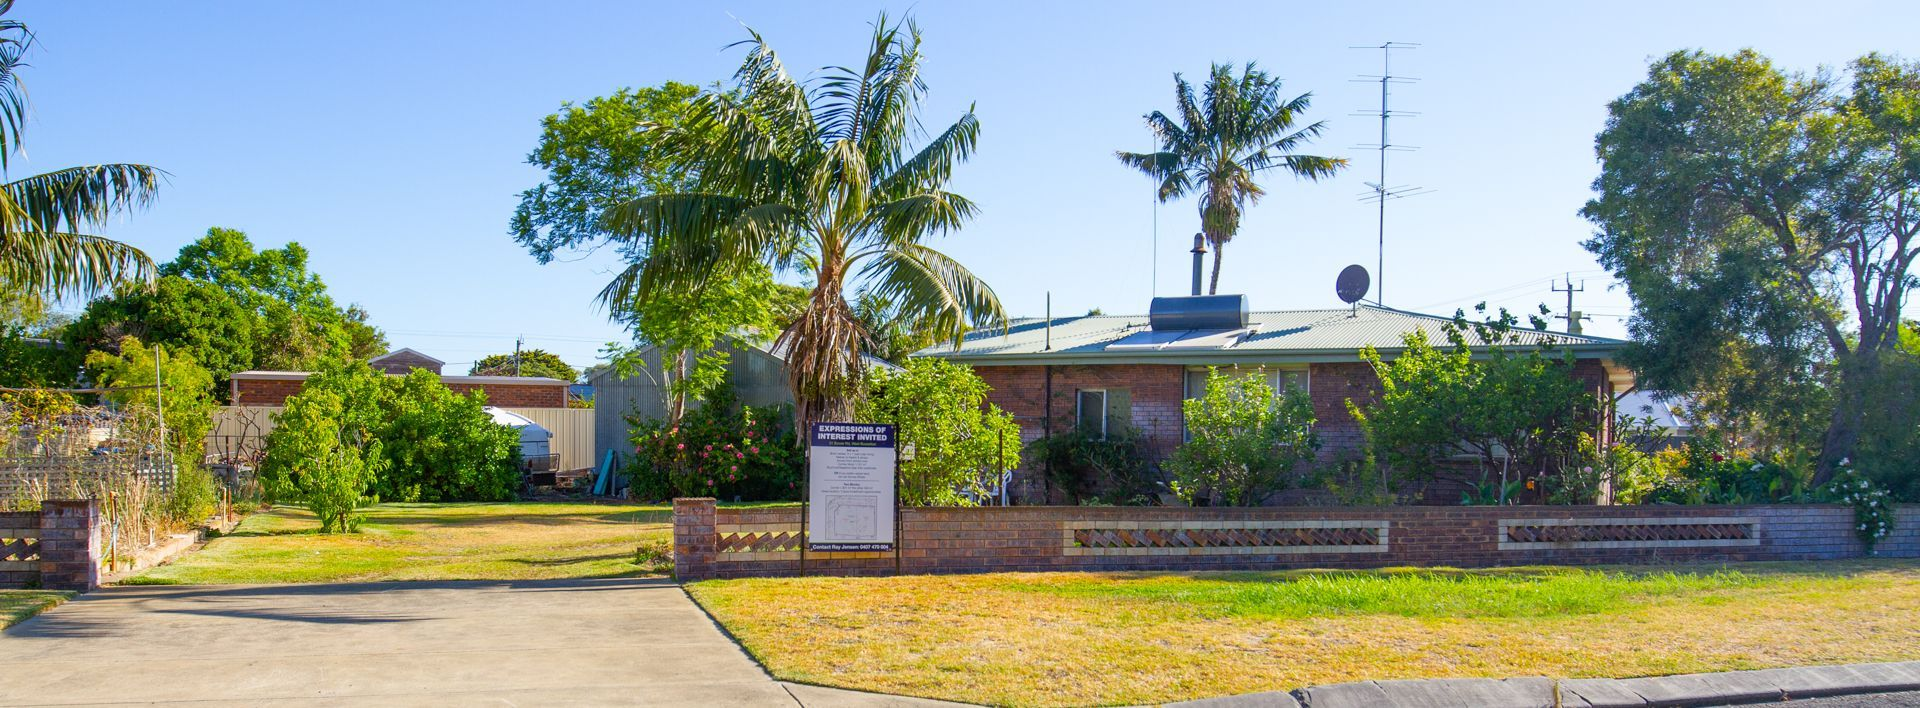 31 Bower Road, West Busselton WA 6280, Image 1